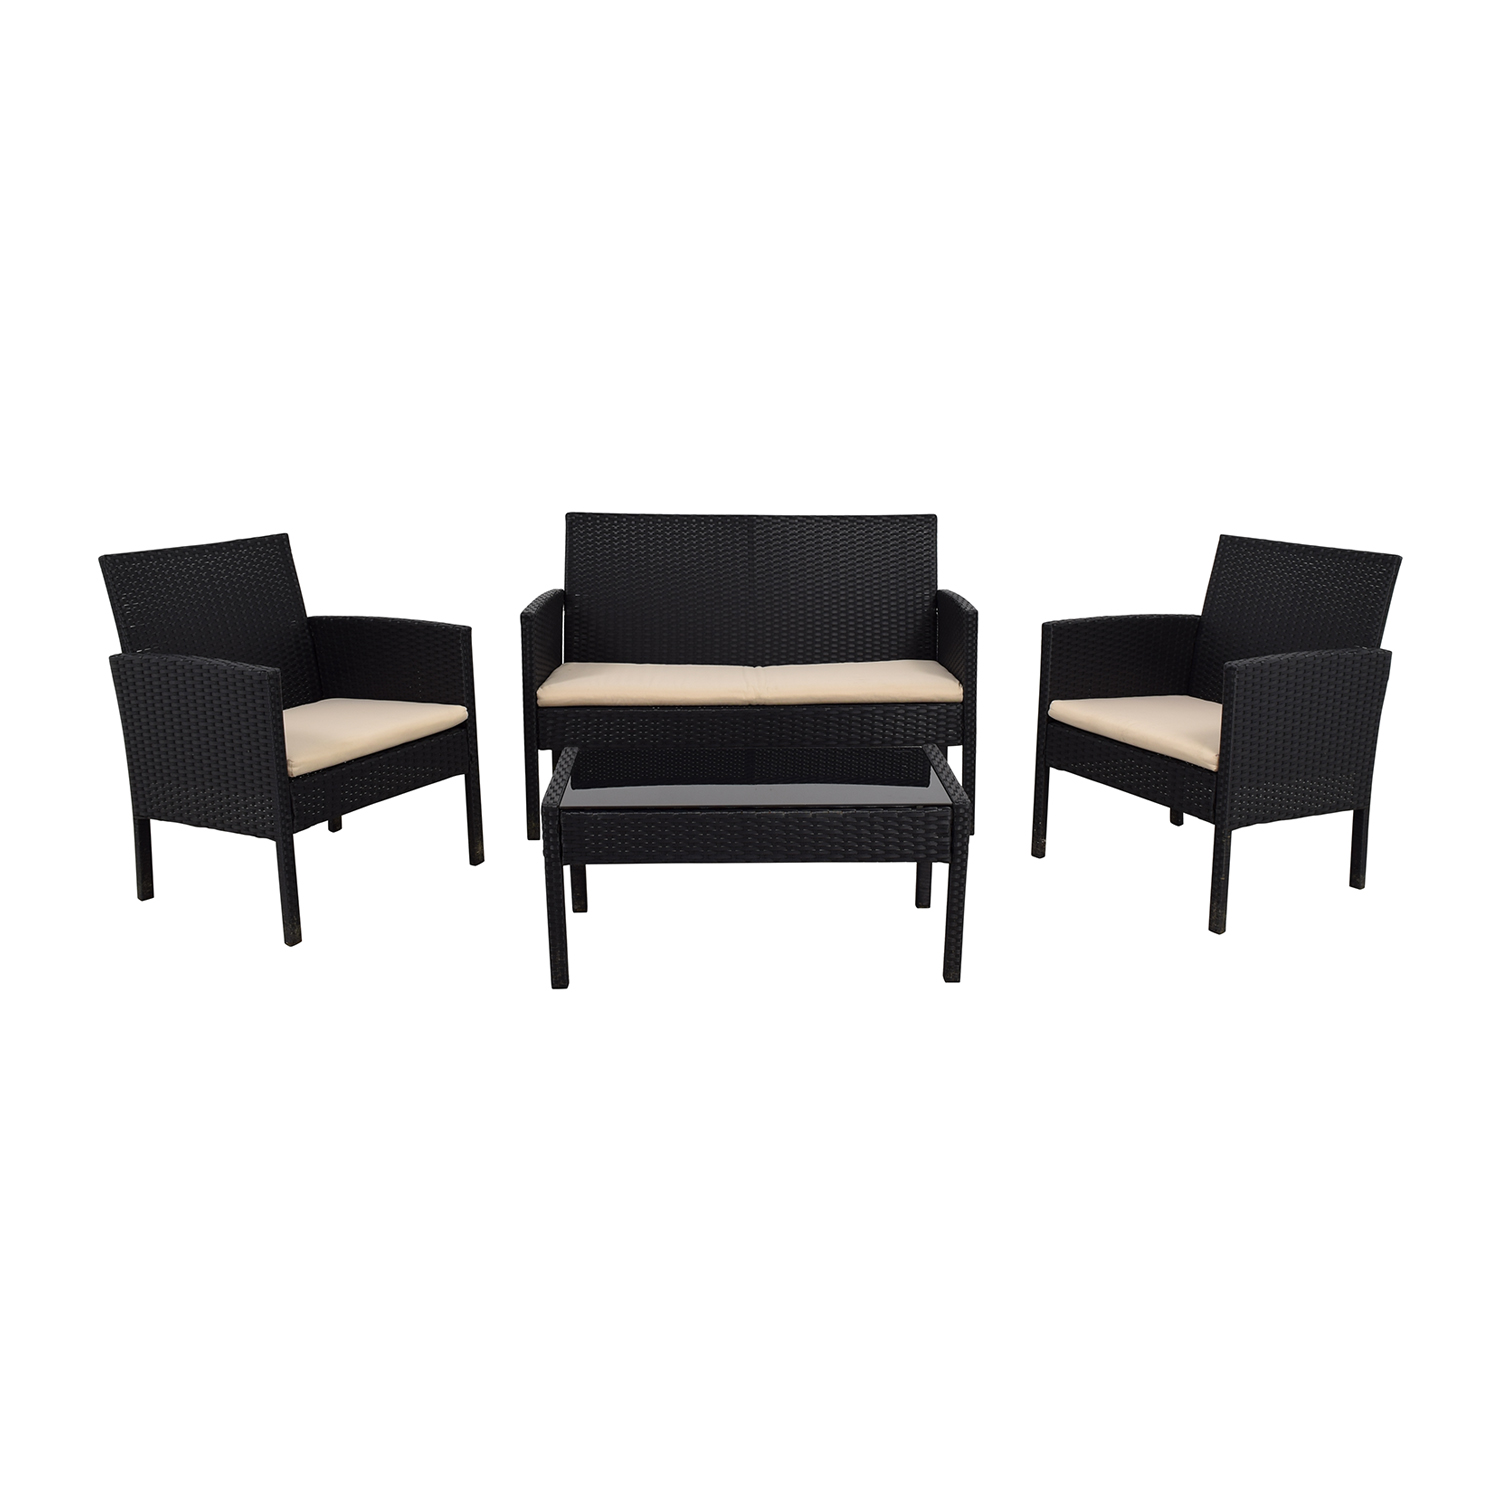 Radeway Radeway Black Outdoor Garden Patio Furniture nj